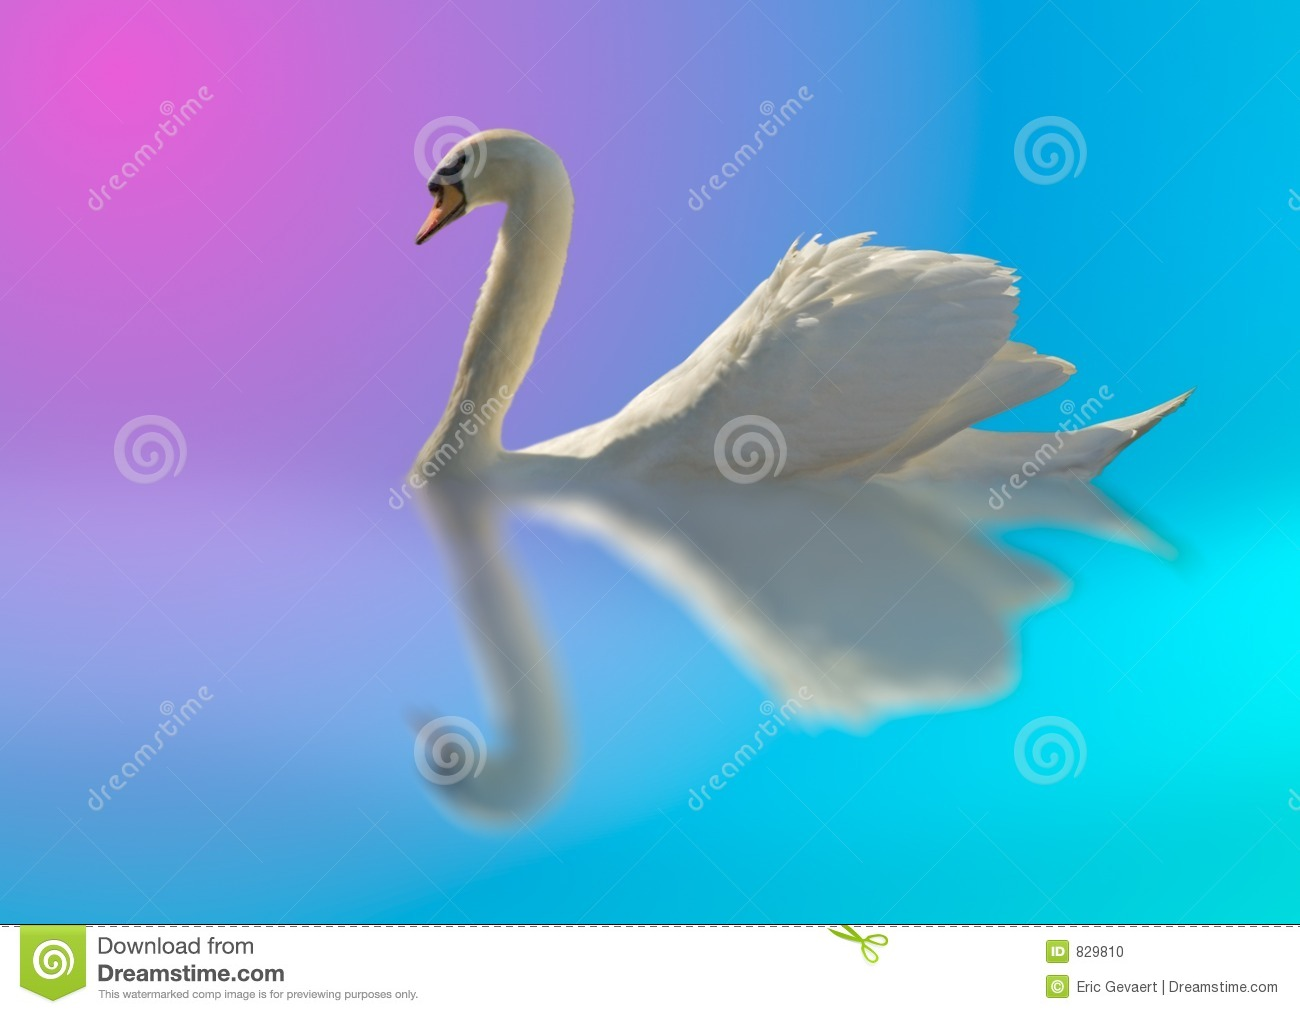 Swan in bright colors